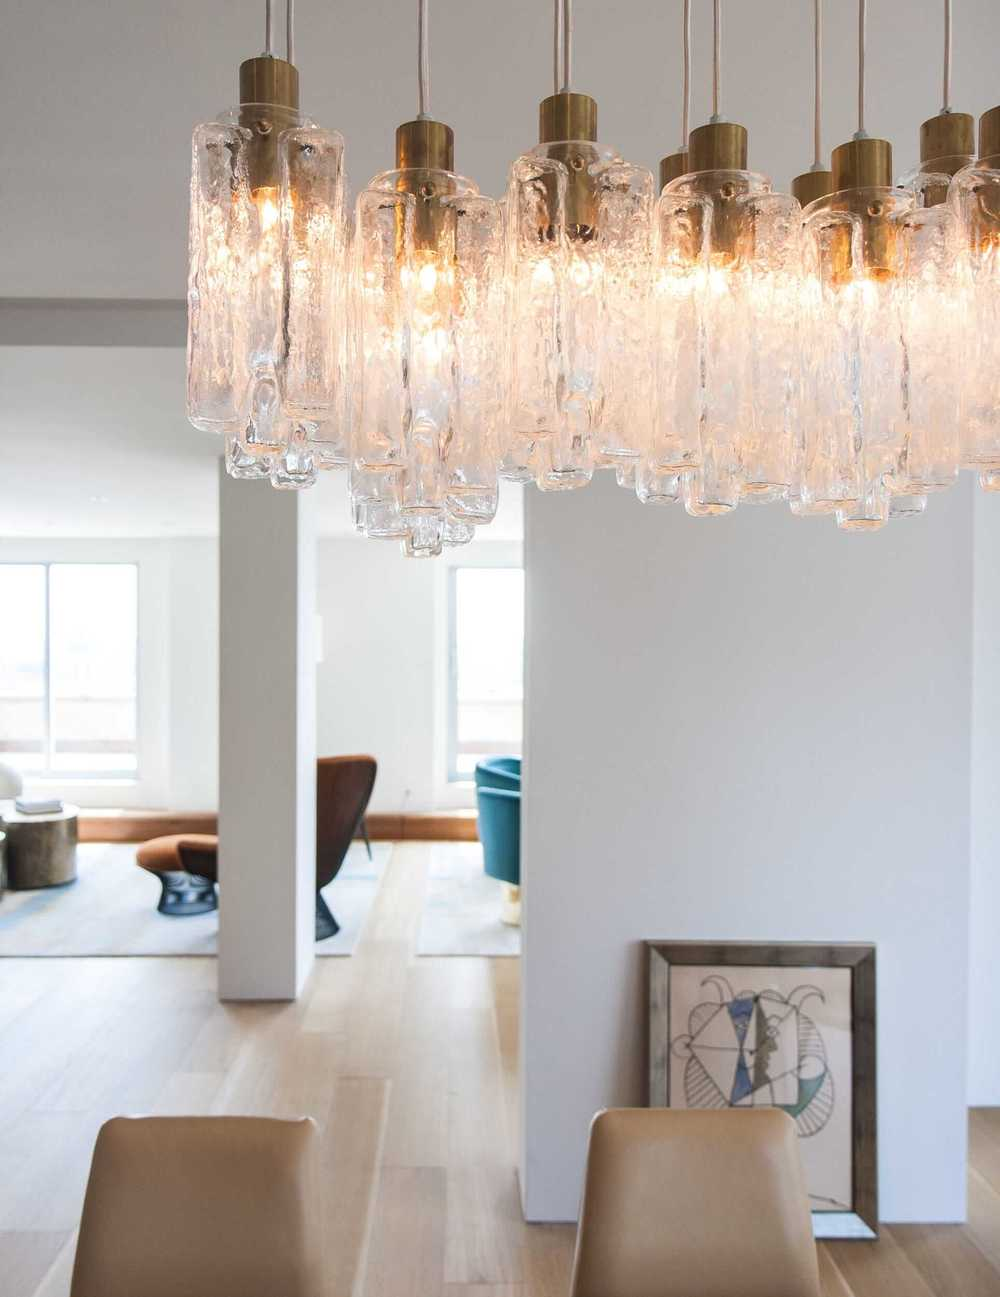 Modern Apartment Renovation | East End Ave New York City | Living Dining Room Glass Pendant Light Fixture Midcentury Furniture Abstract Art | RES4